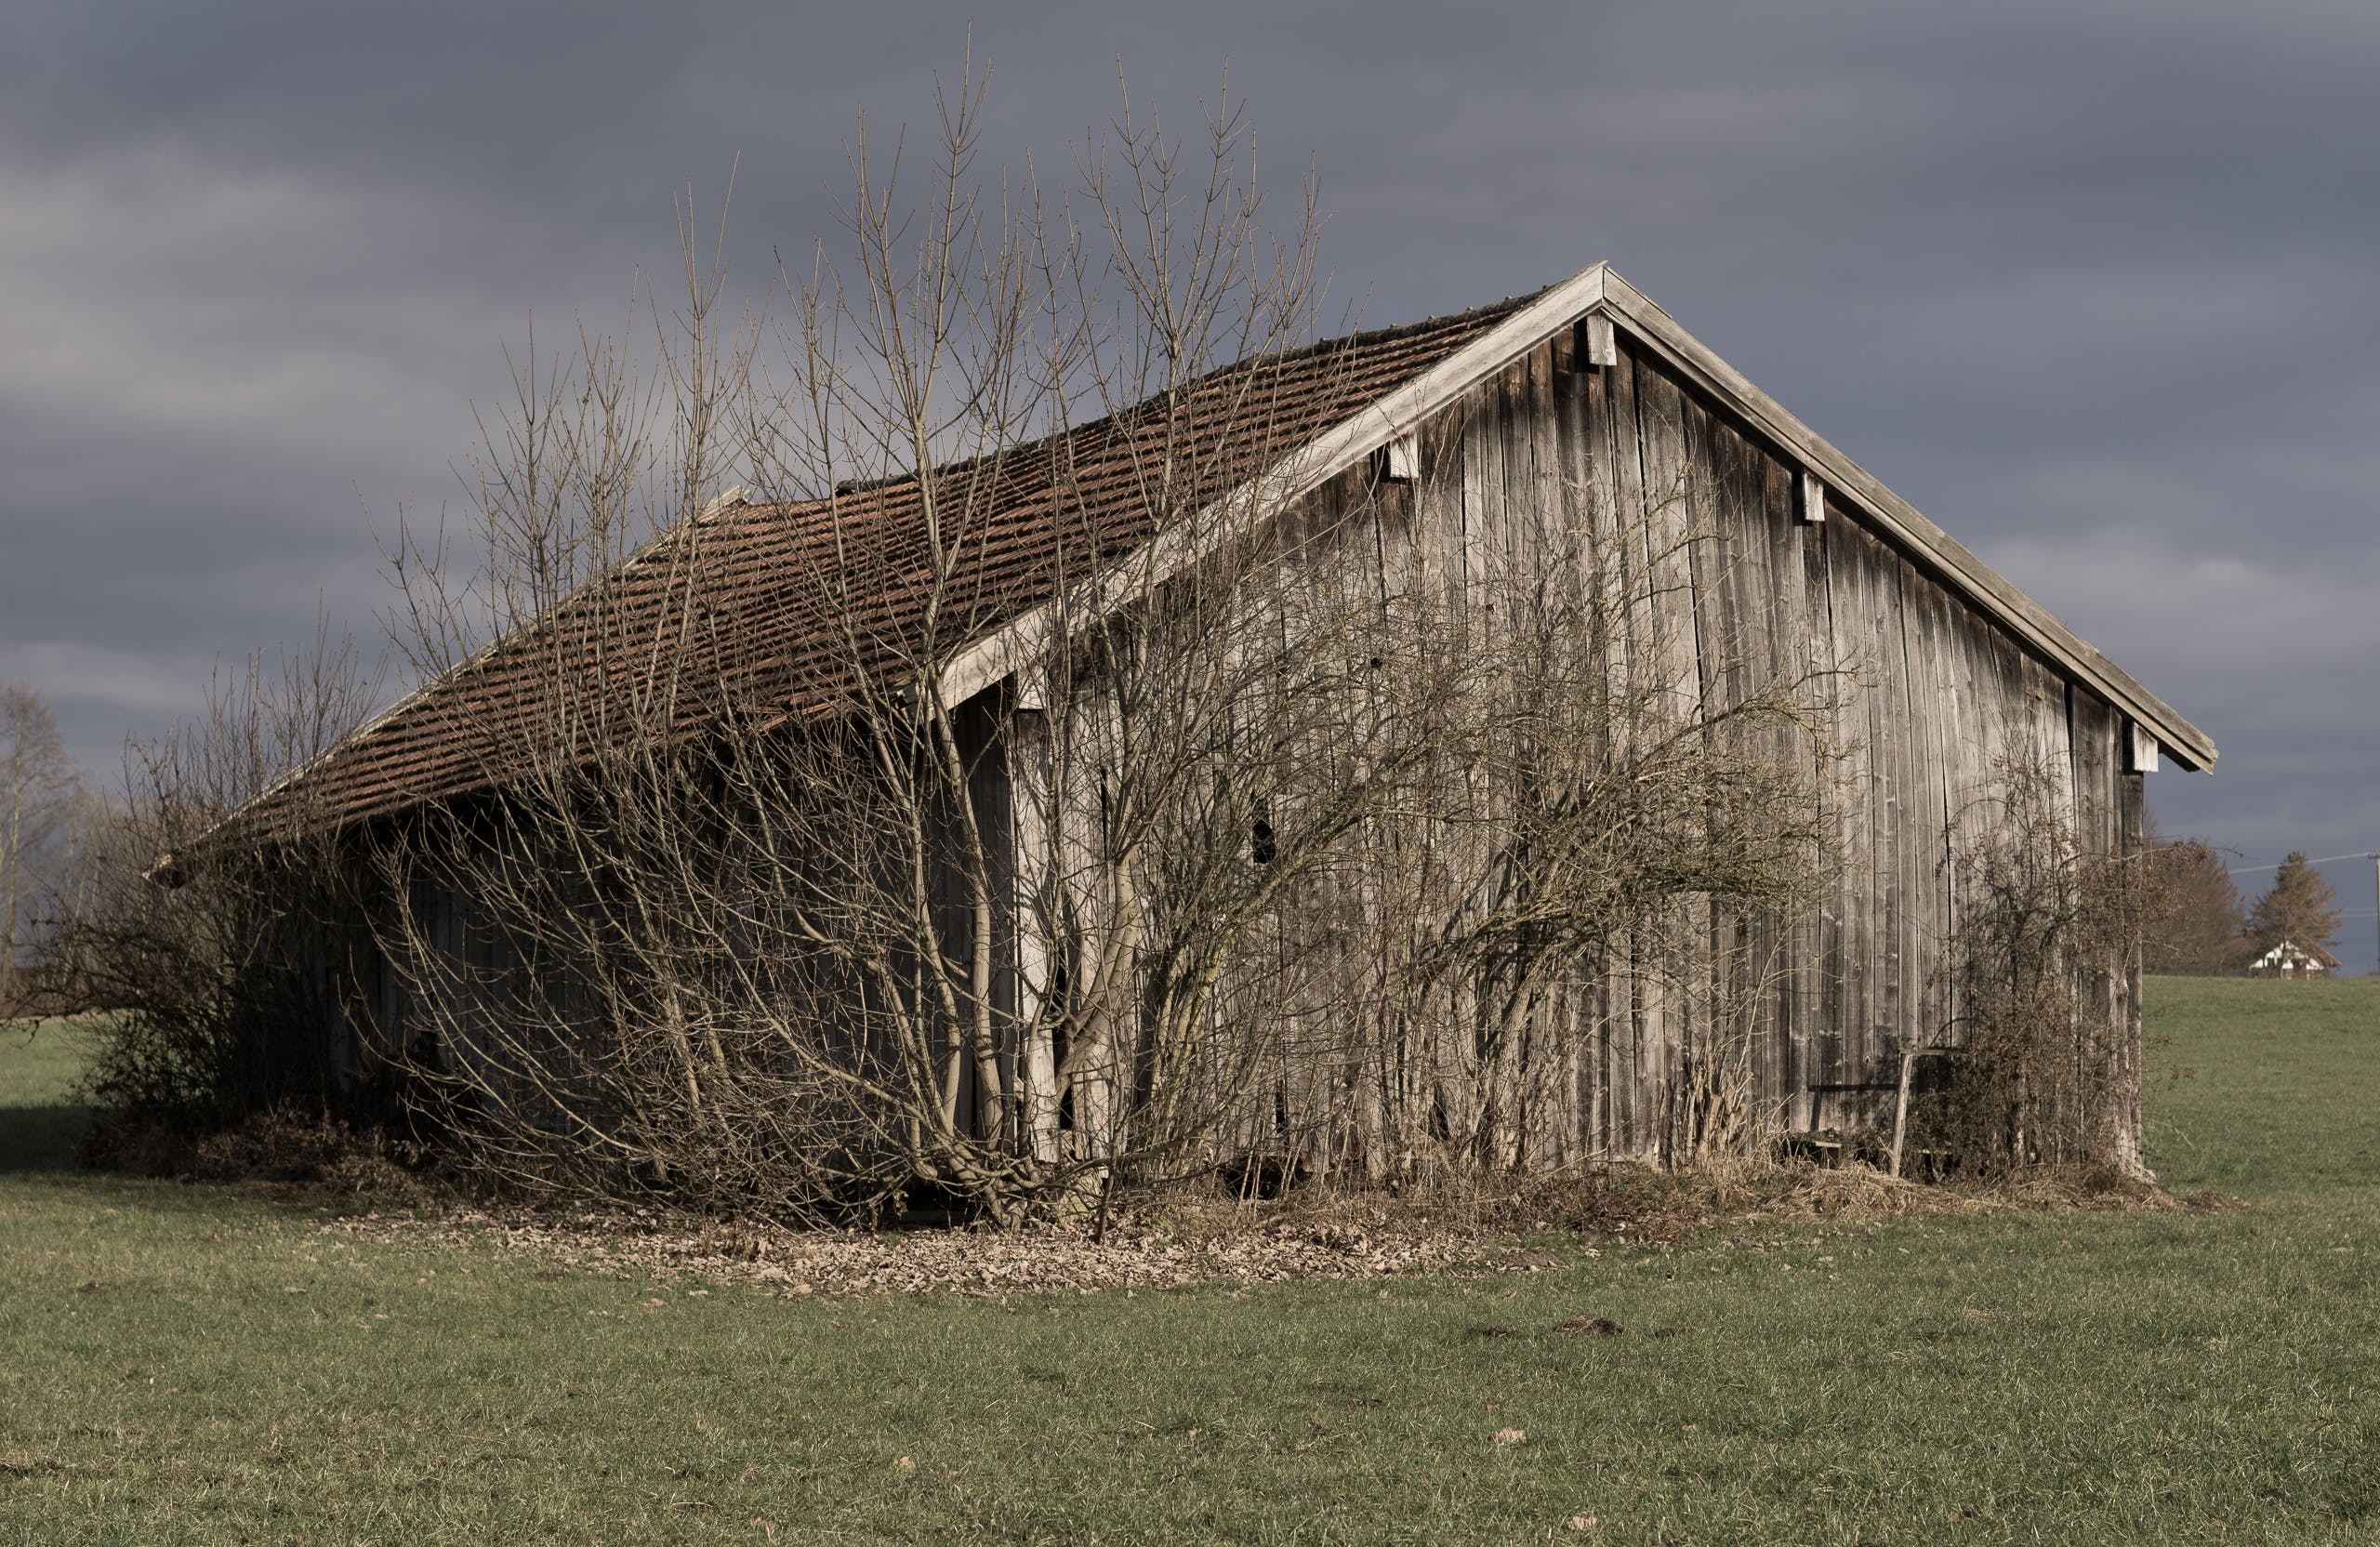 Free stock photo of nature, Old shack